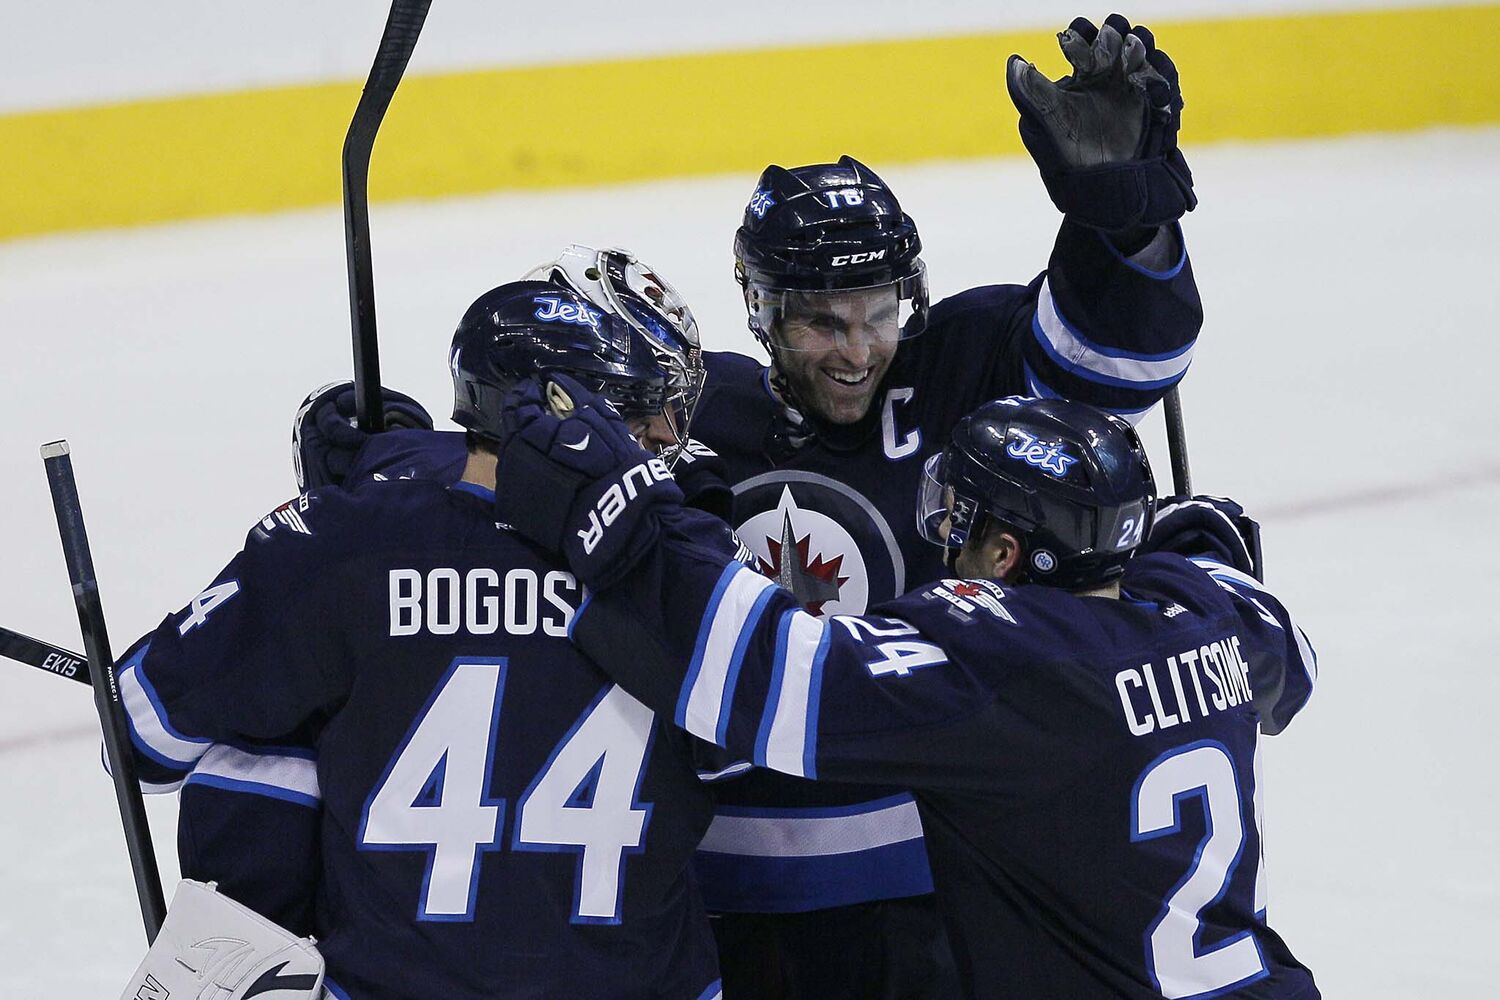 Winnipeg Jets' Zach Bogosian (44), goaltender Ondrej Pavelec (31), Andrew Ladd (16) and Grant Clitsome (24) celebrate their win over the over San Jose Sharks. (JOHN WOODS / WINNIPEG FREE PRESS)